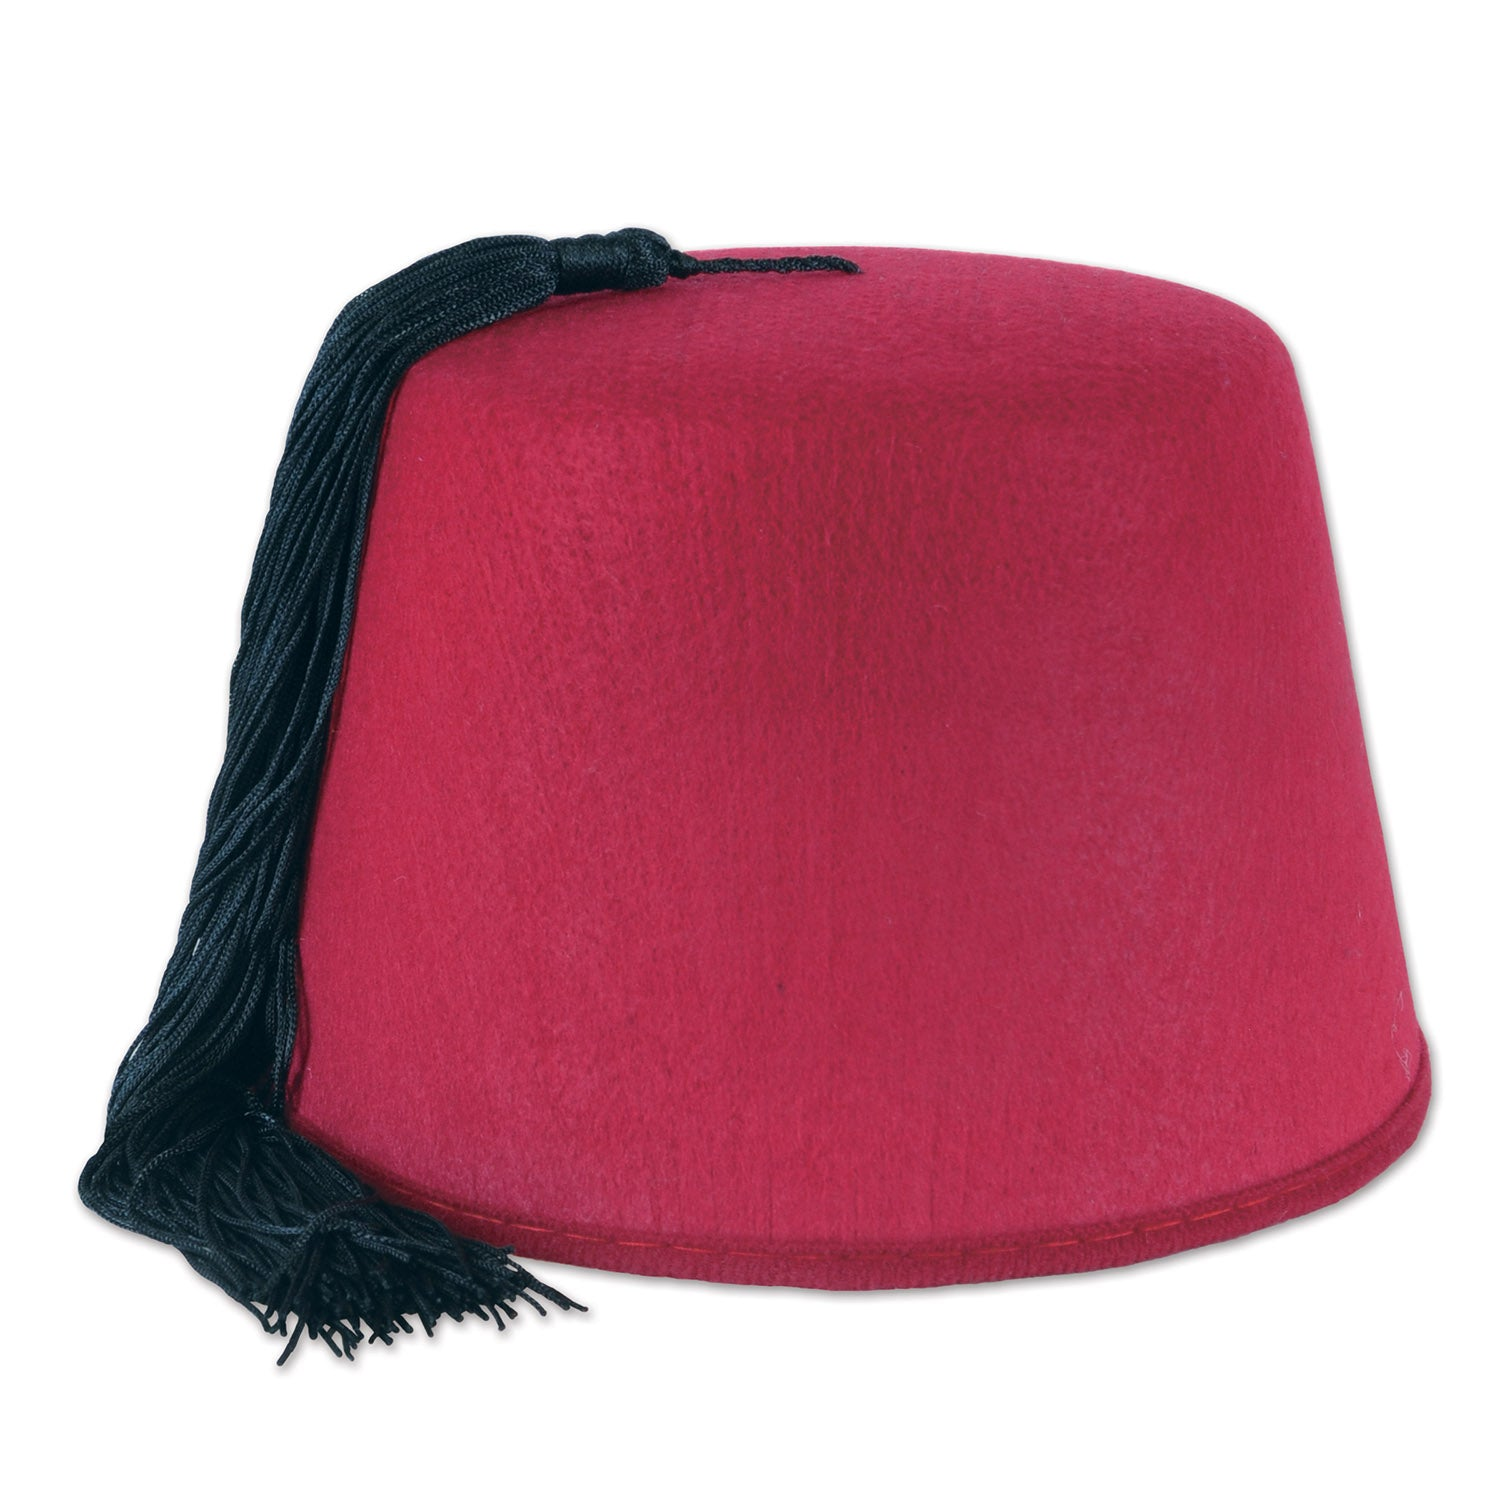 Felt Fez Hat by Beistle - International Theme Decorations